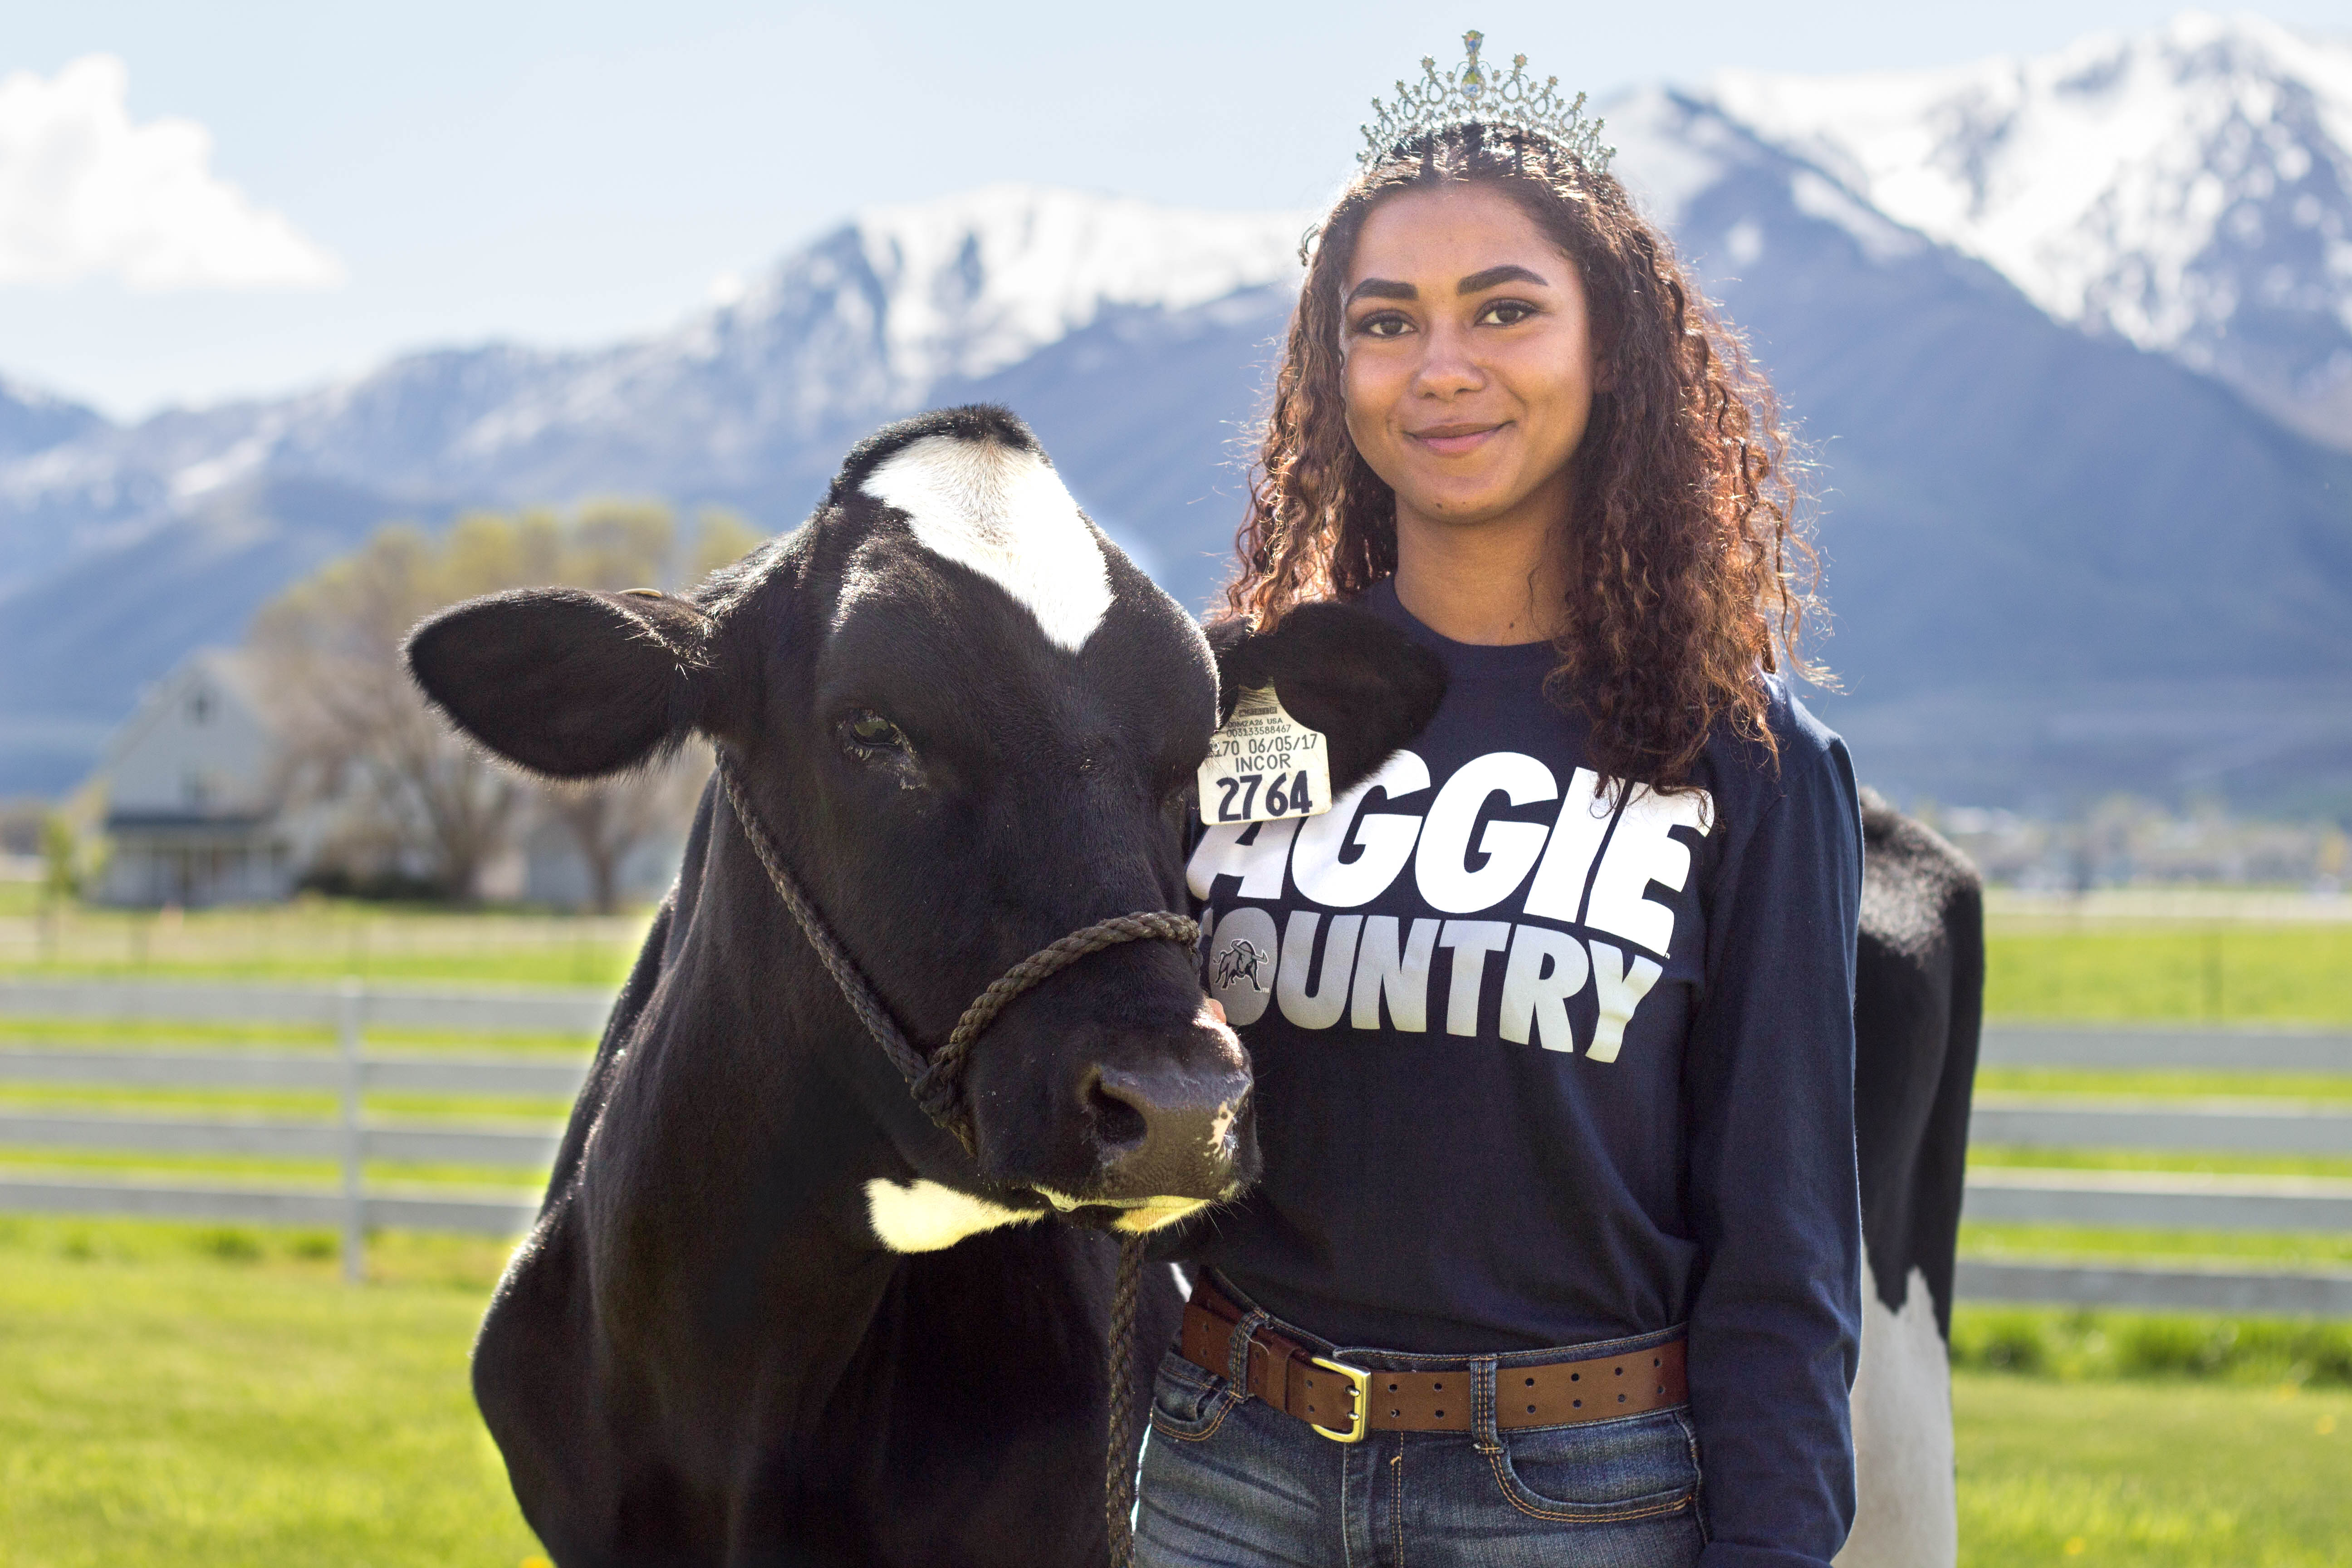 <strong&gt;&#34;WHO AM I?&#34; </strong&gt;<br /&gt; The New Miss USU Tells Her Truth